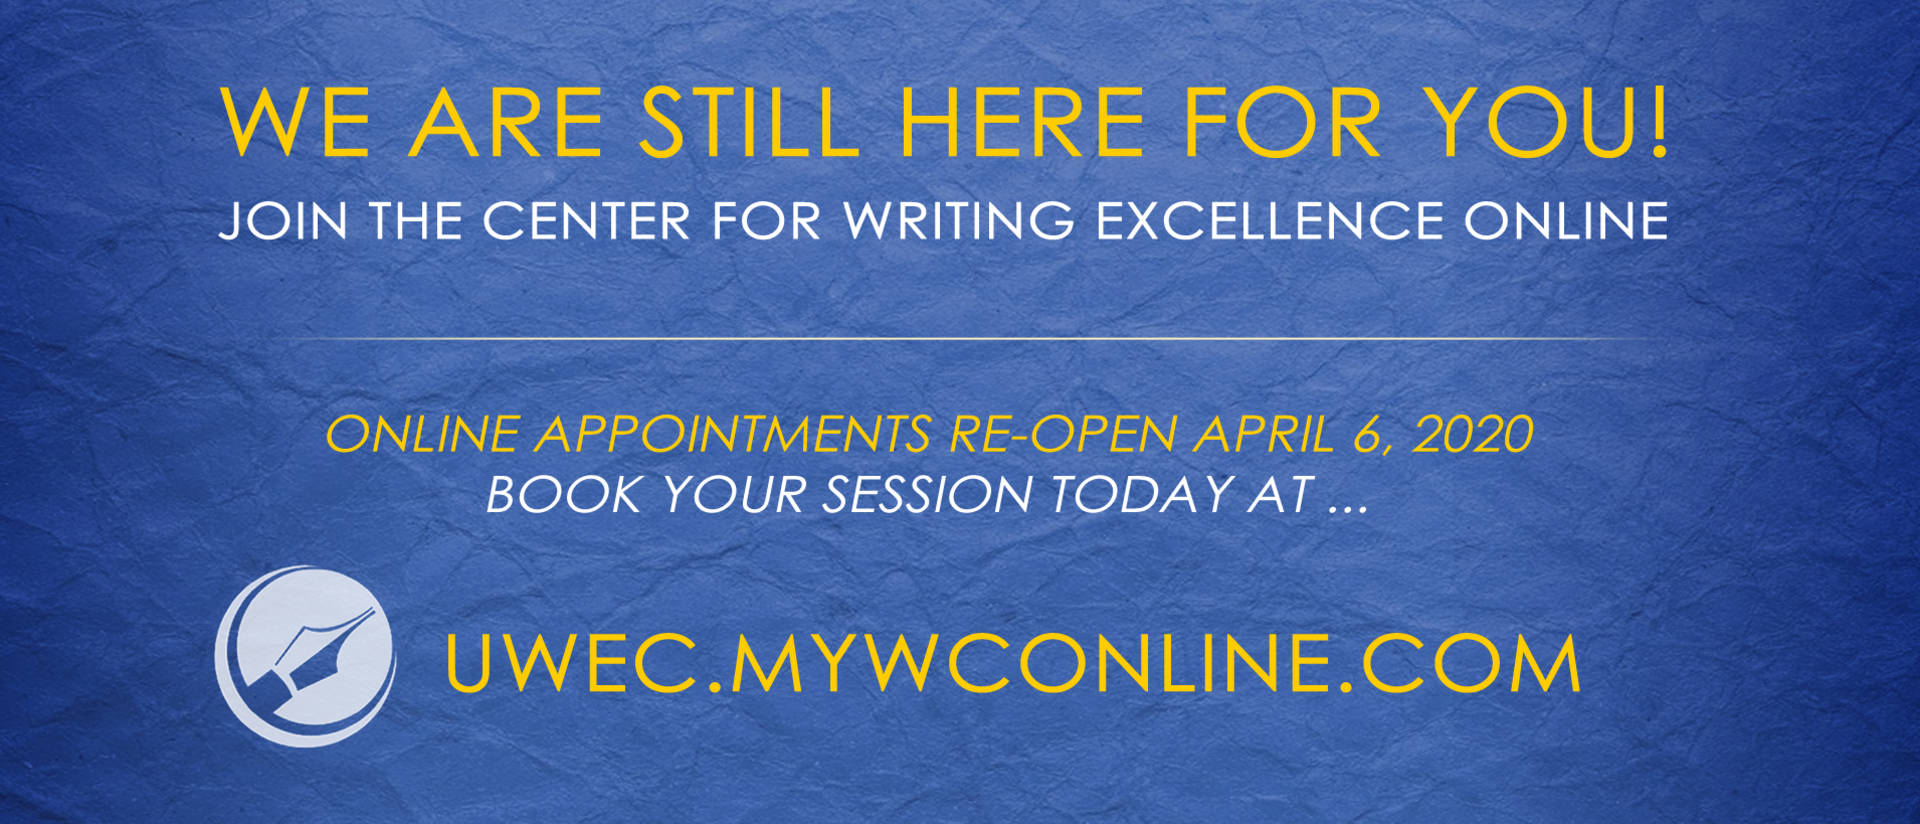 Join the Center for Writing Excellence online at uwec.mywconline.com